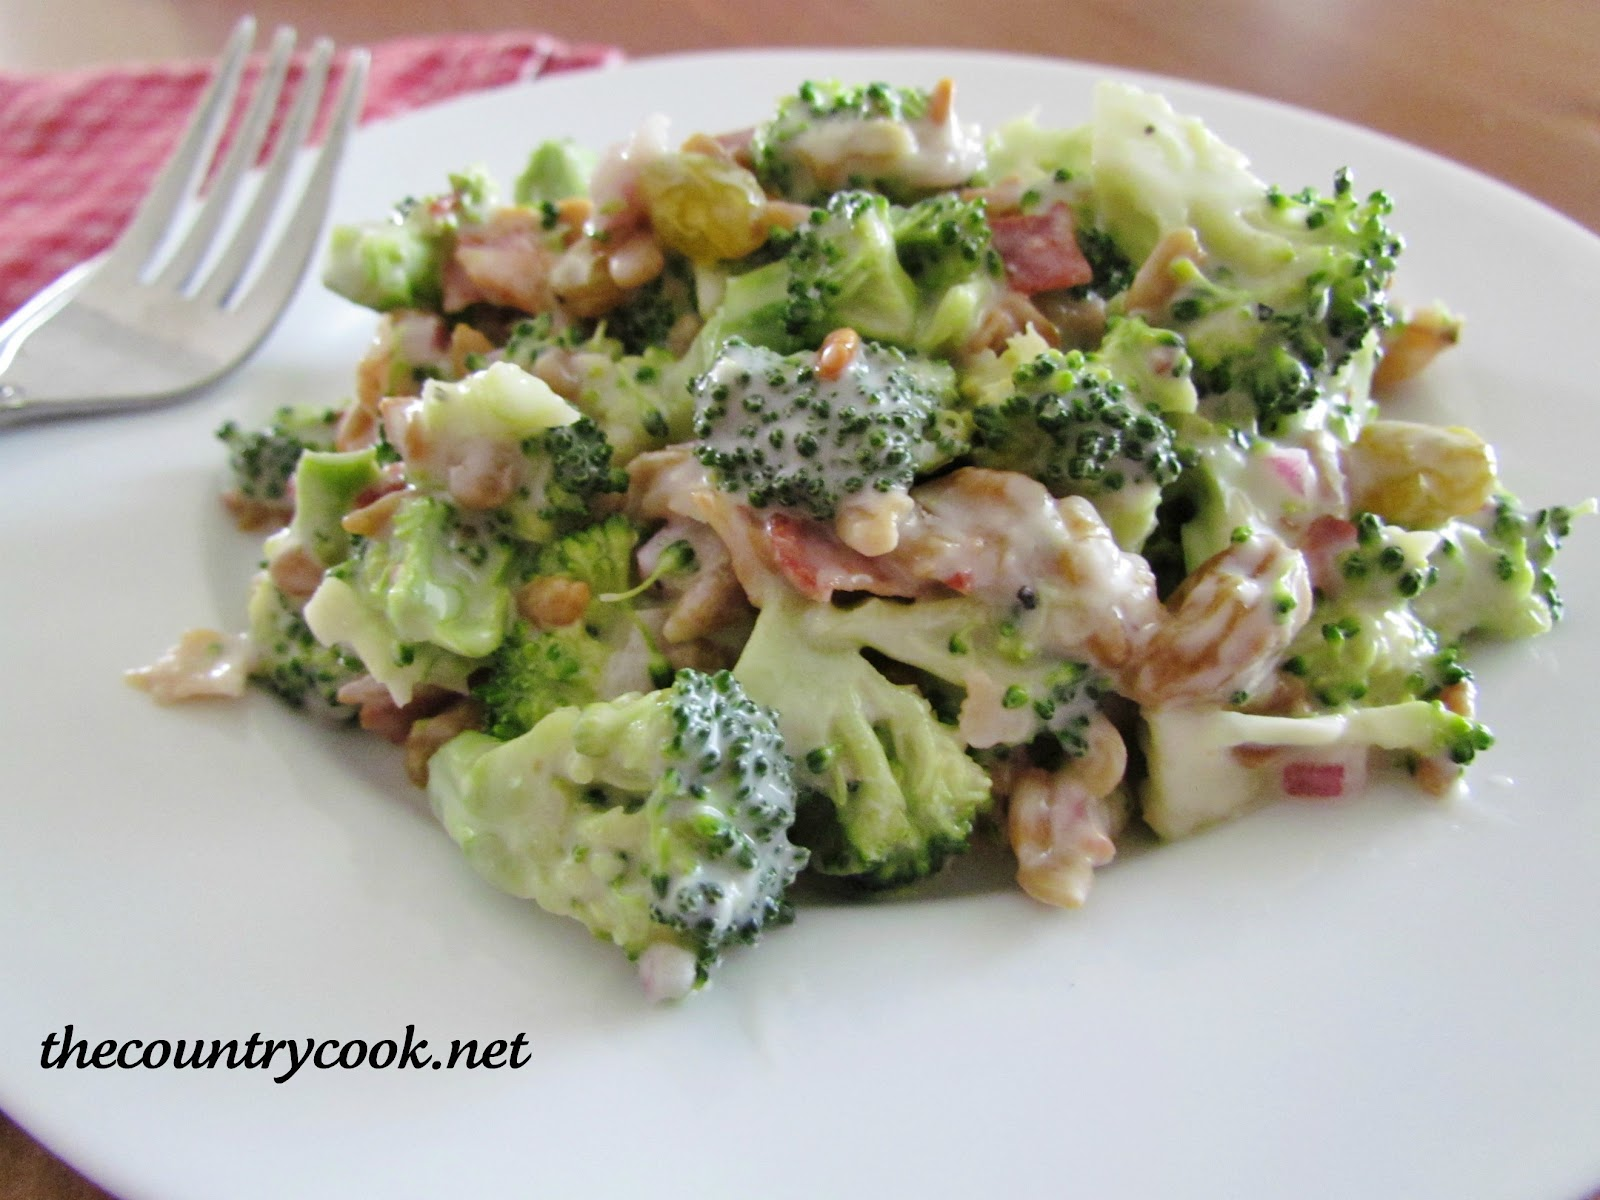 Broccoli Salad - The Country Cook